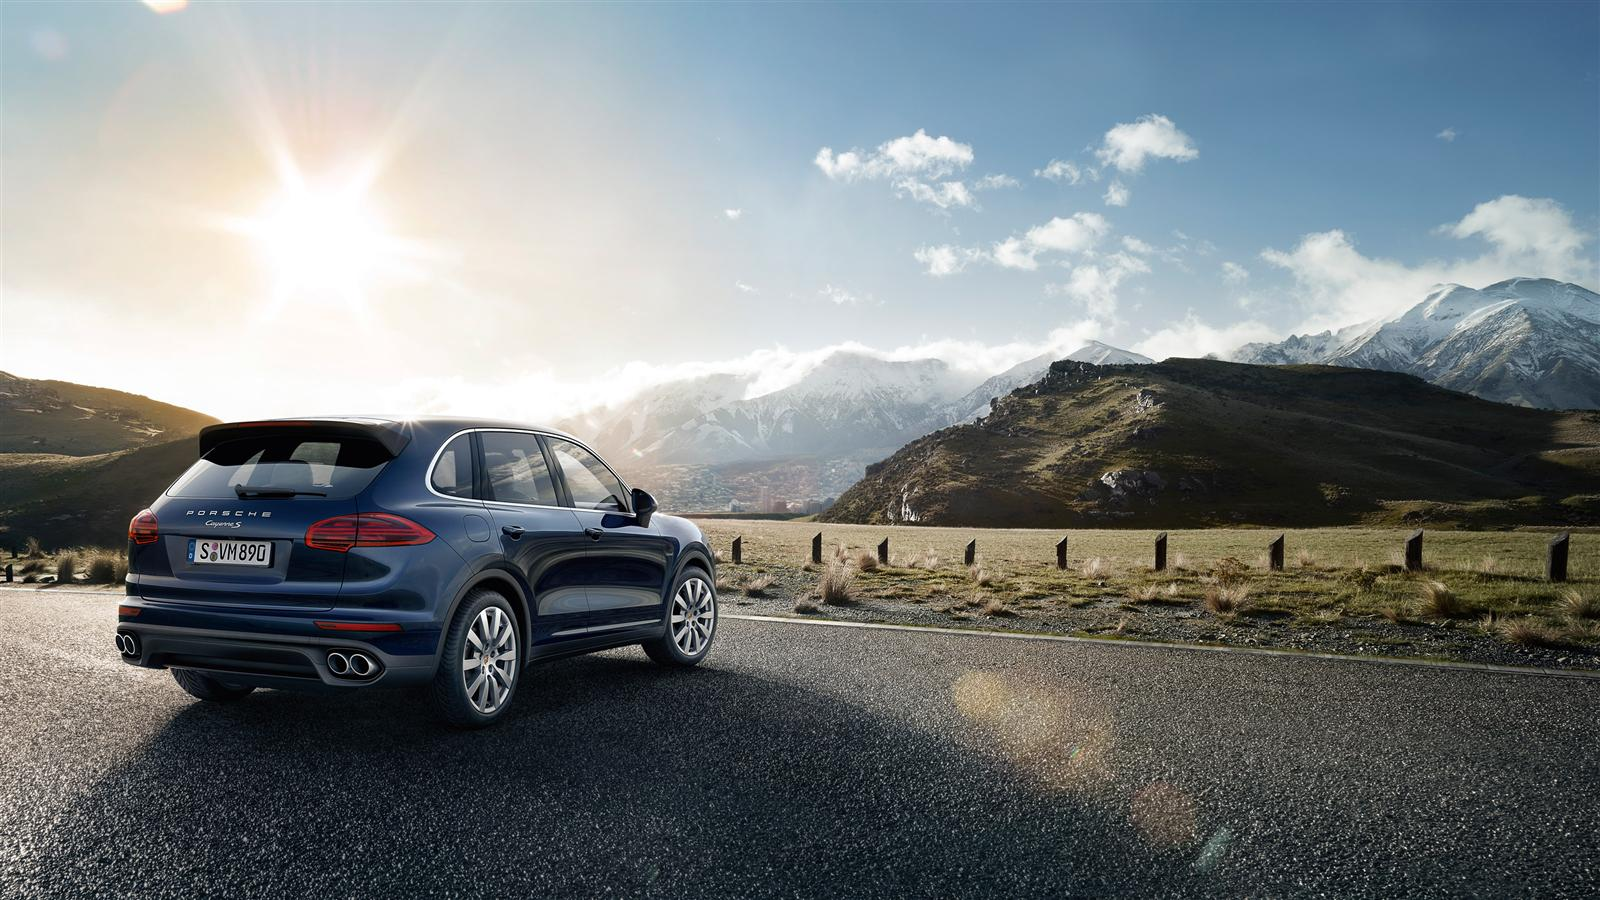 2015 porsche cayenne facelift launched in india at rs 1. Black Bedroom Furniture Sets. Home Design Ideas